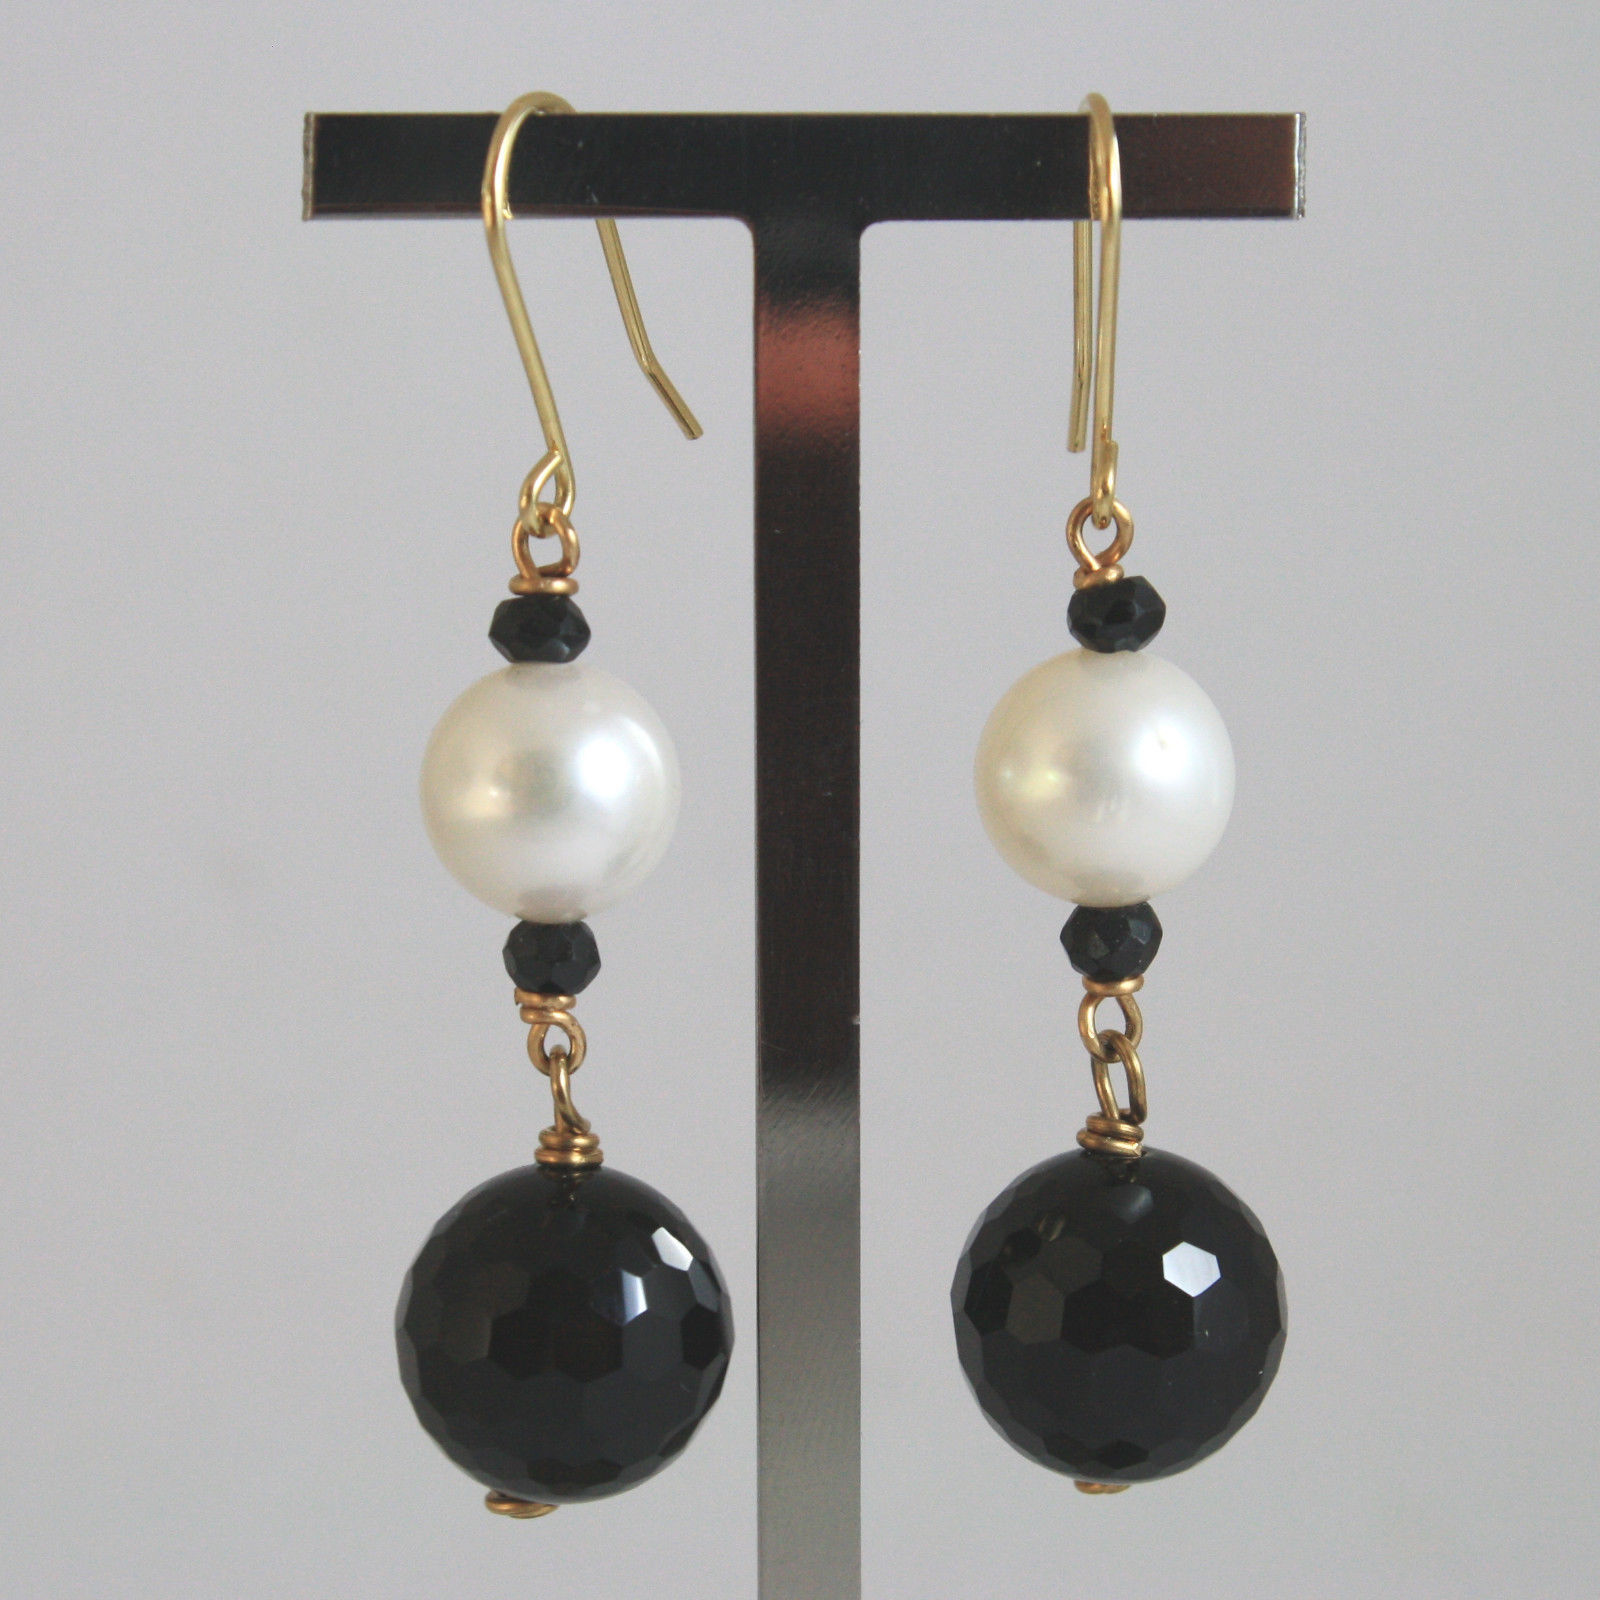 SOLID 18K YELLOW GOLD EARRINGS, WITH BLACK ONYX AND WHITE PEARL, LENGTH 2 INCHES